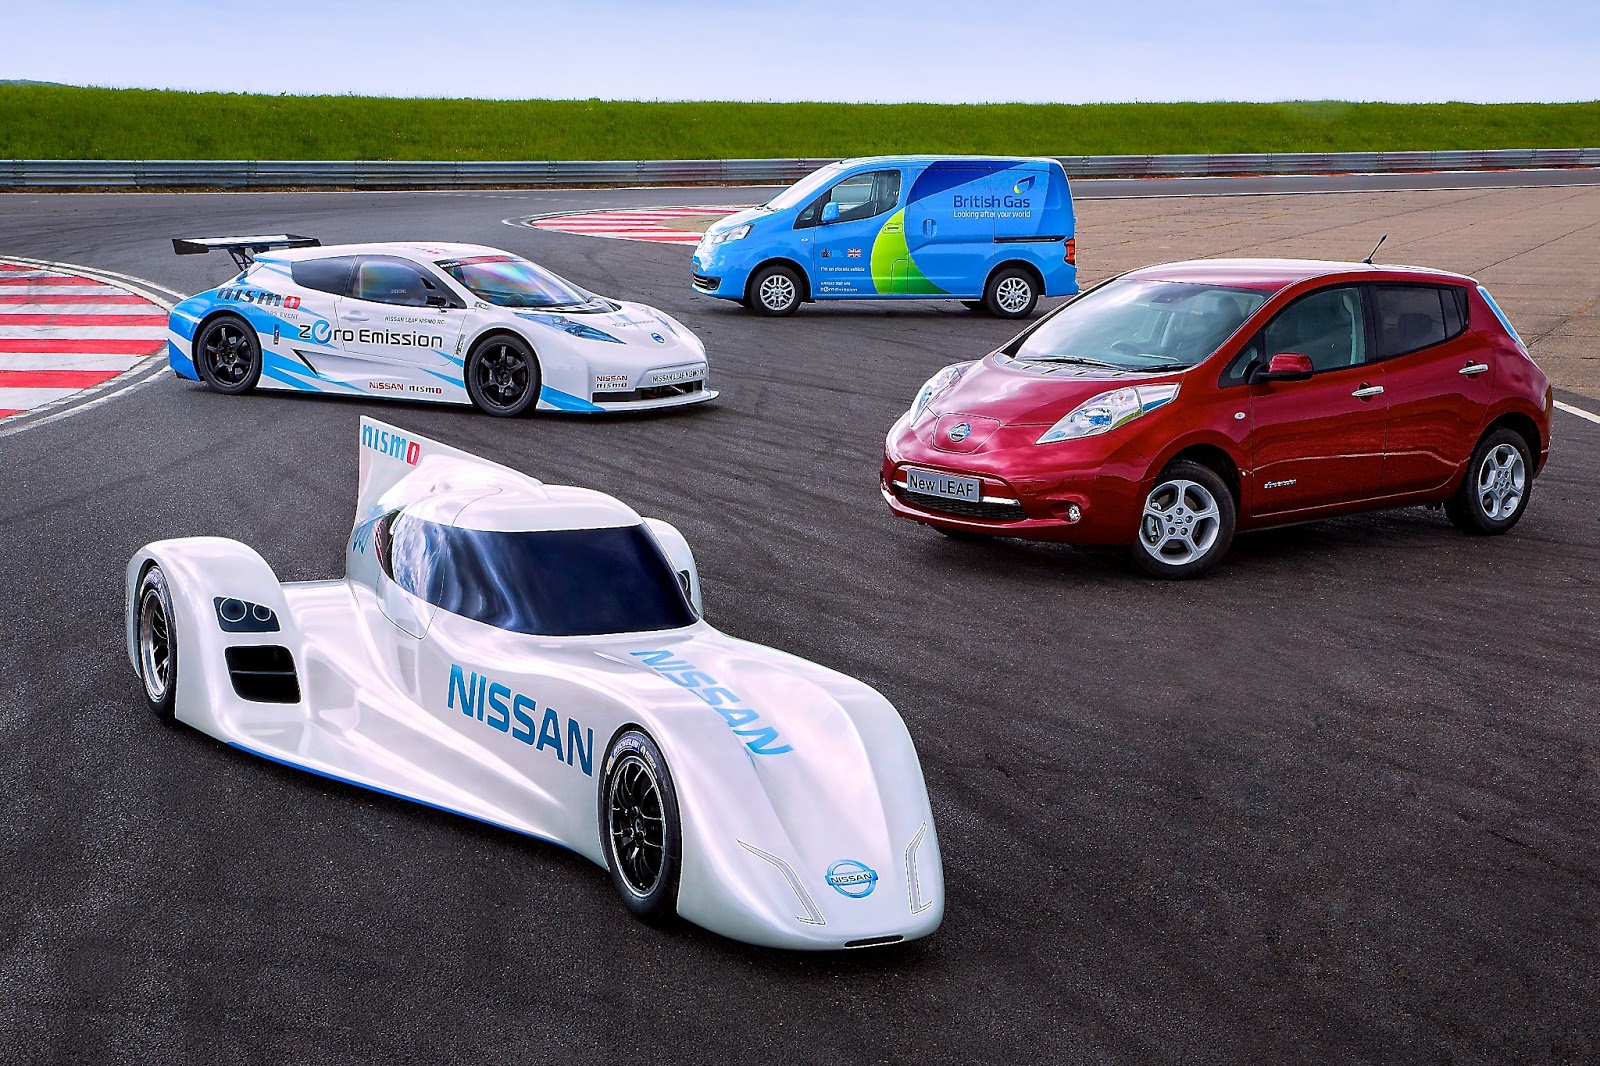 NISSAN Unveil Worldu0027s Fastest Electric Racing Car At Le Mans [VIDEO] |  Electric Vehicle News